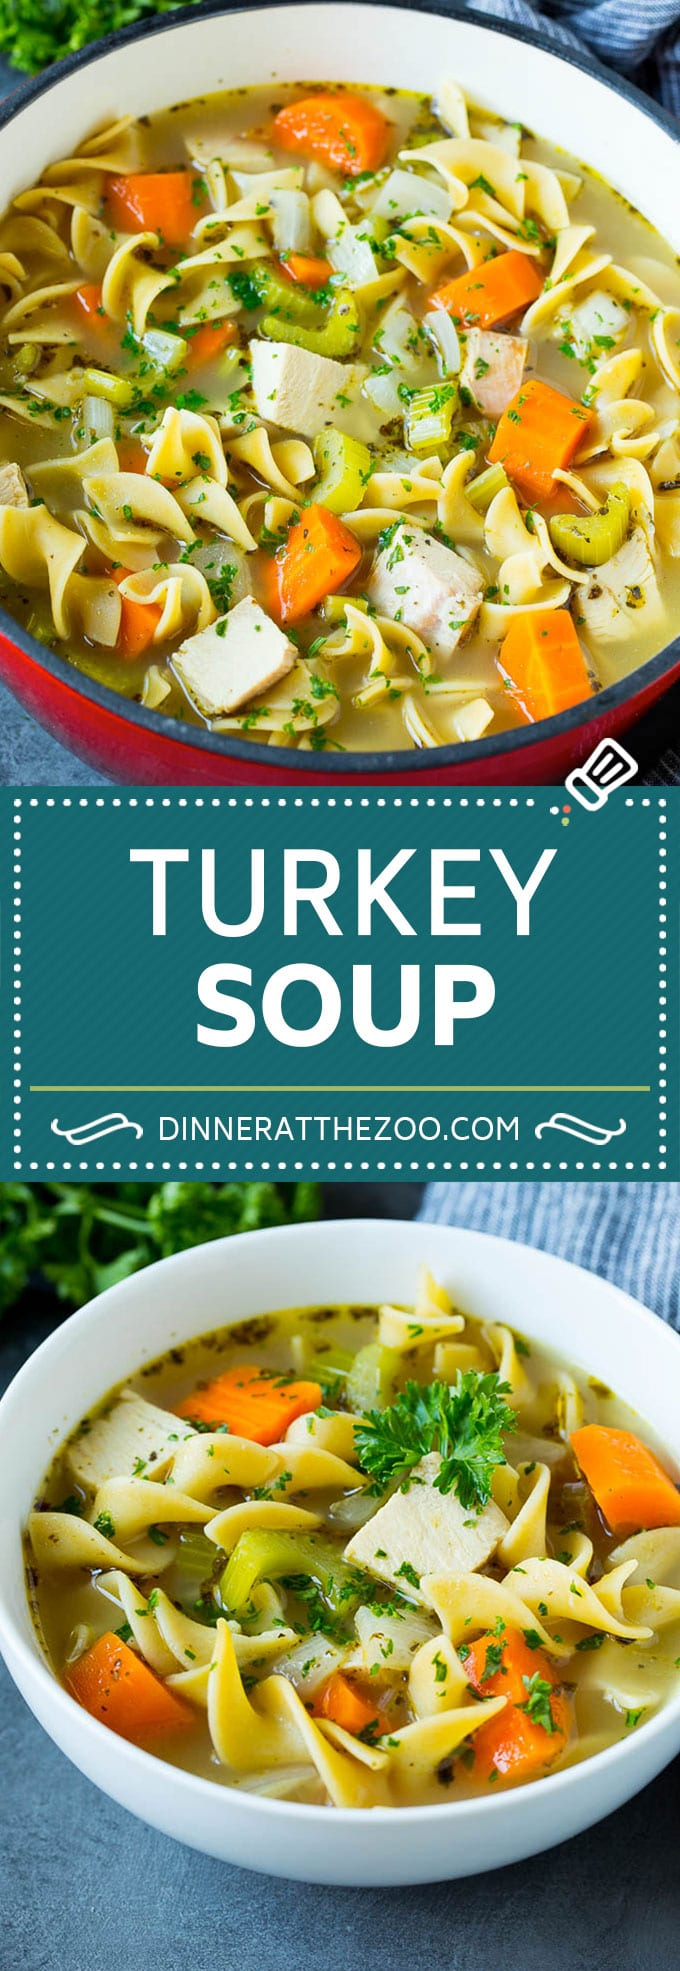 This turkey soup recipe is homemade turkey broth loaded with vegetables, diced turkey and egg noodles.